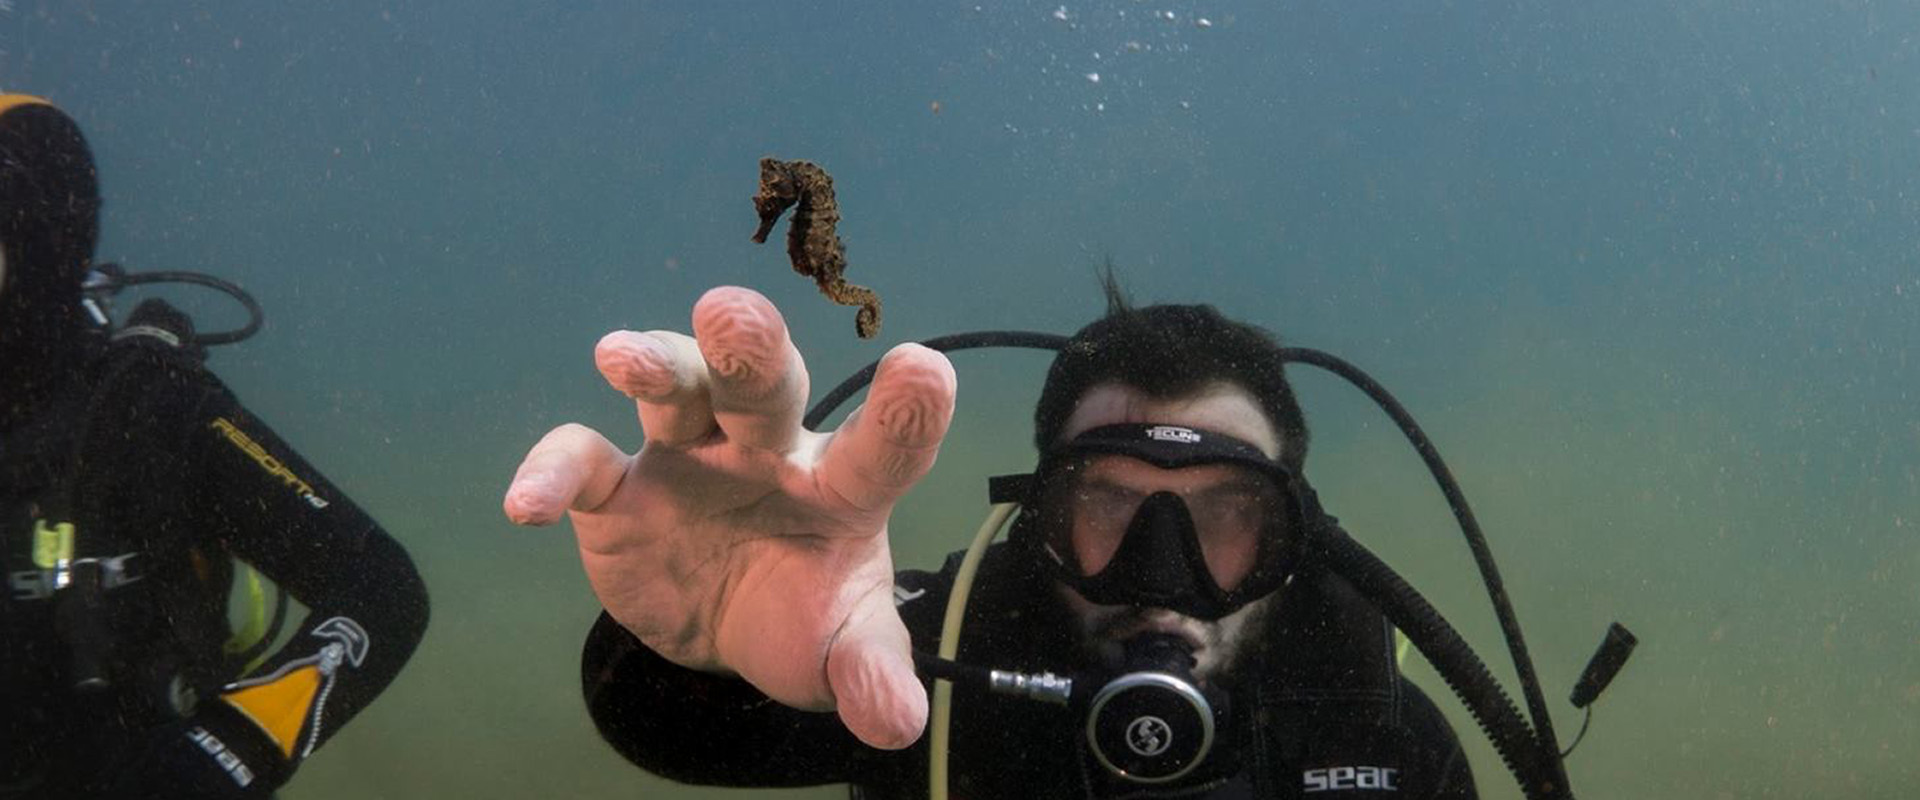 ngue_commercial-diving_documentaries-002